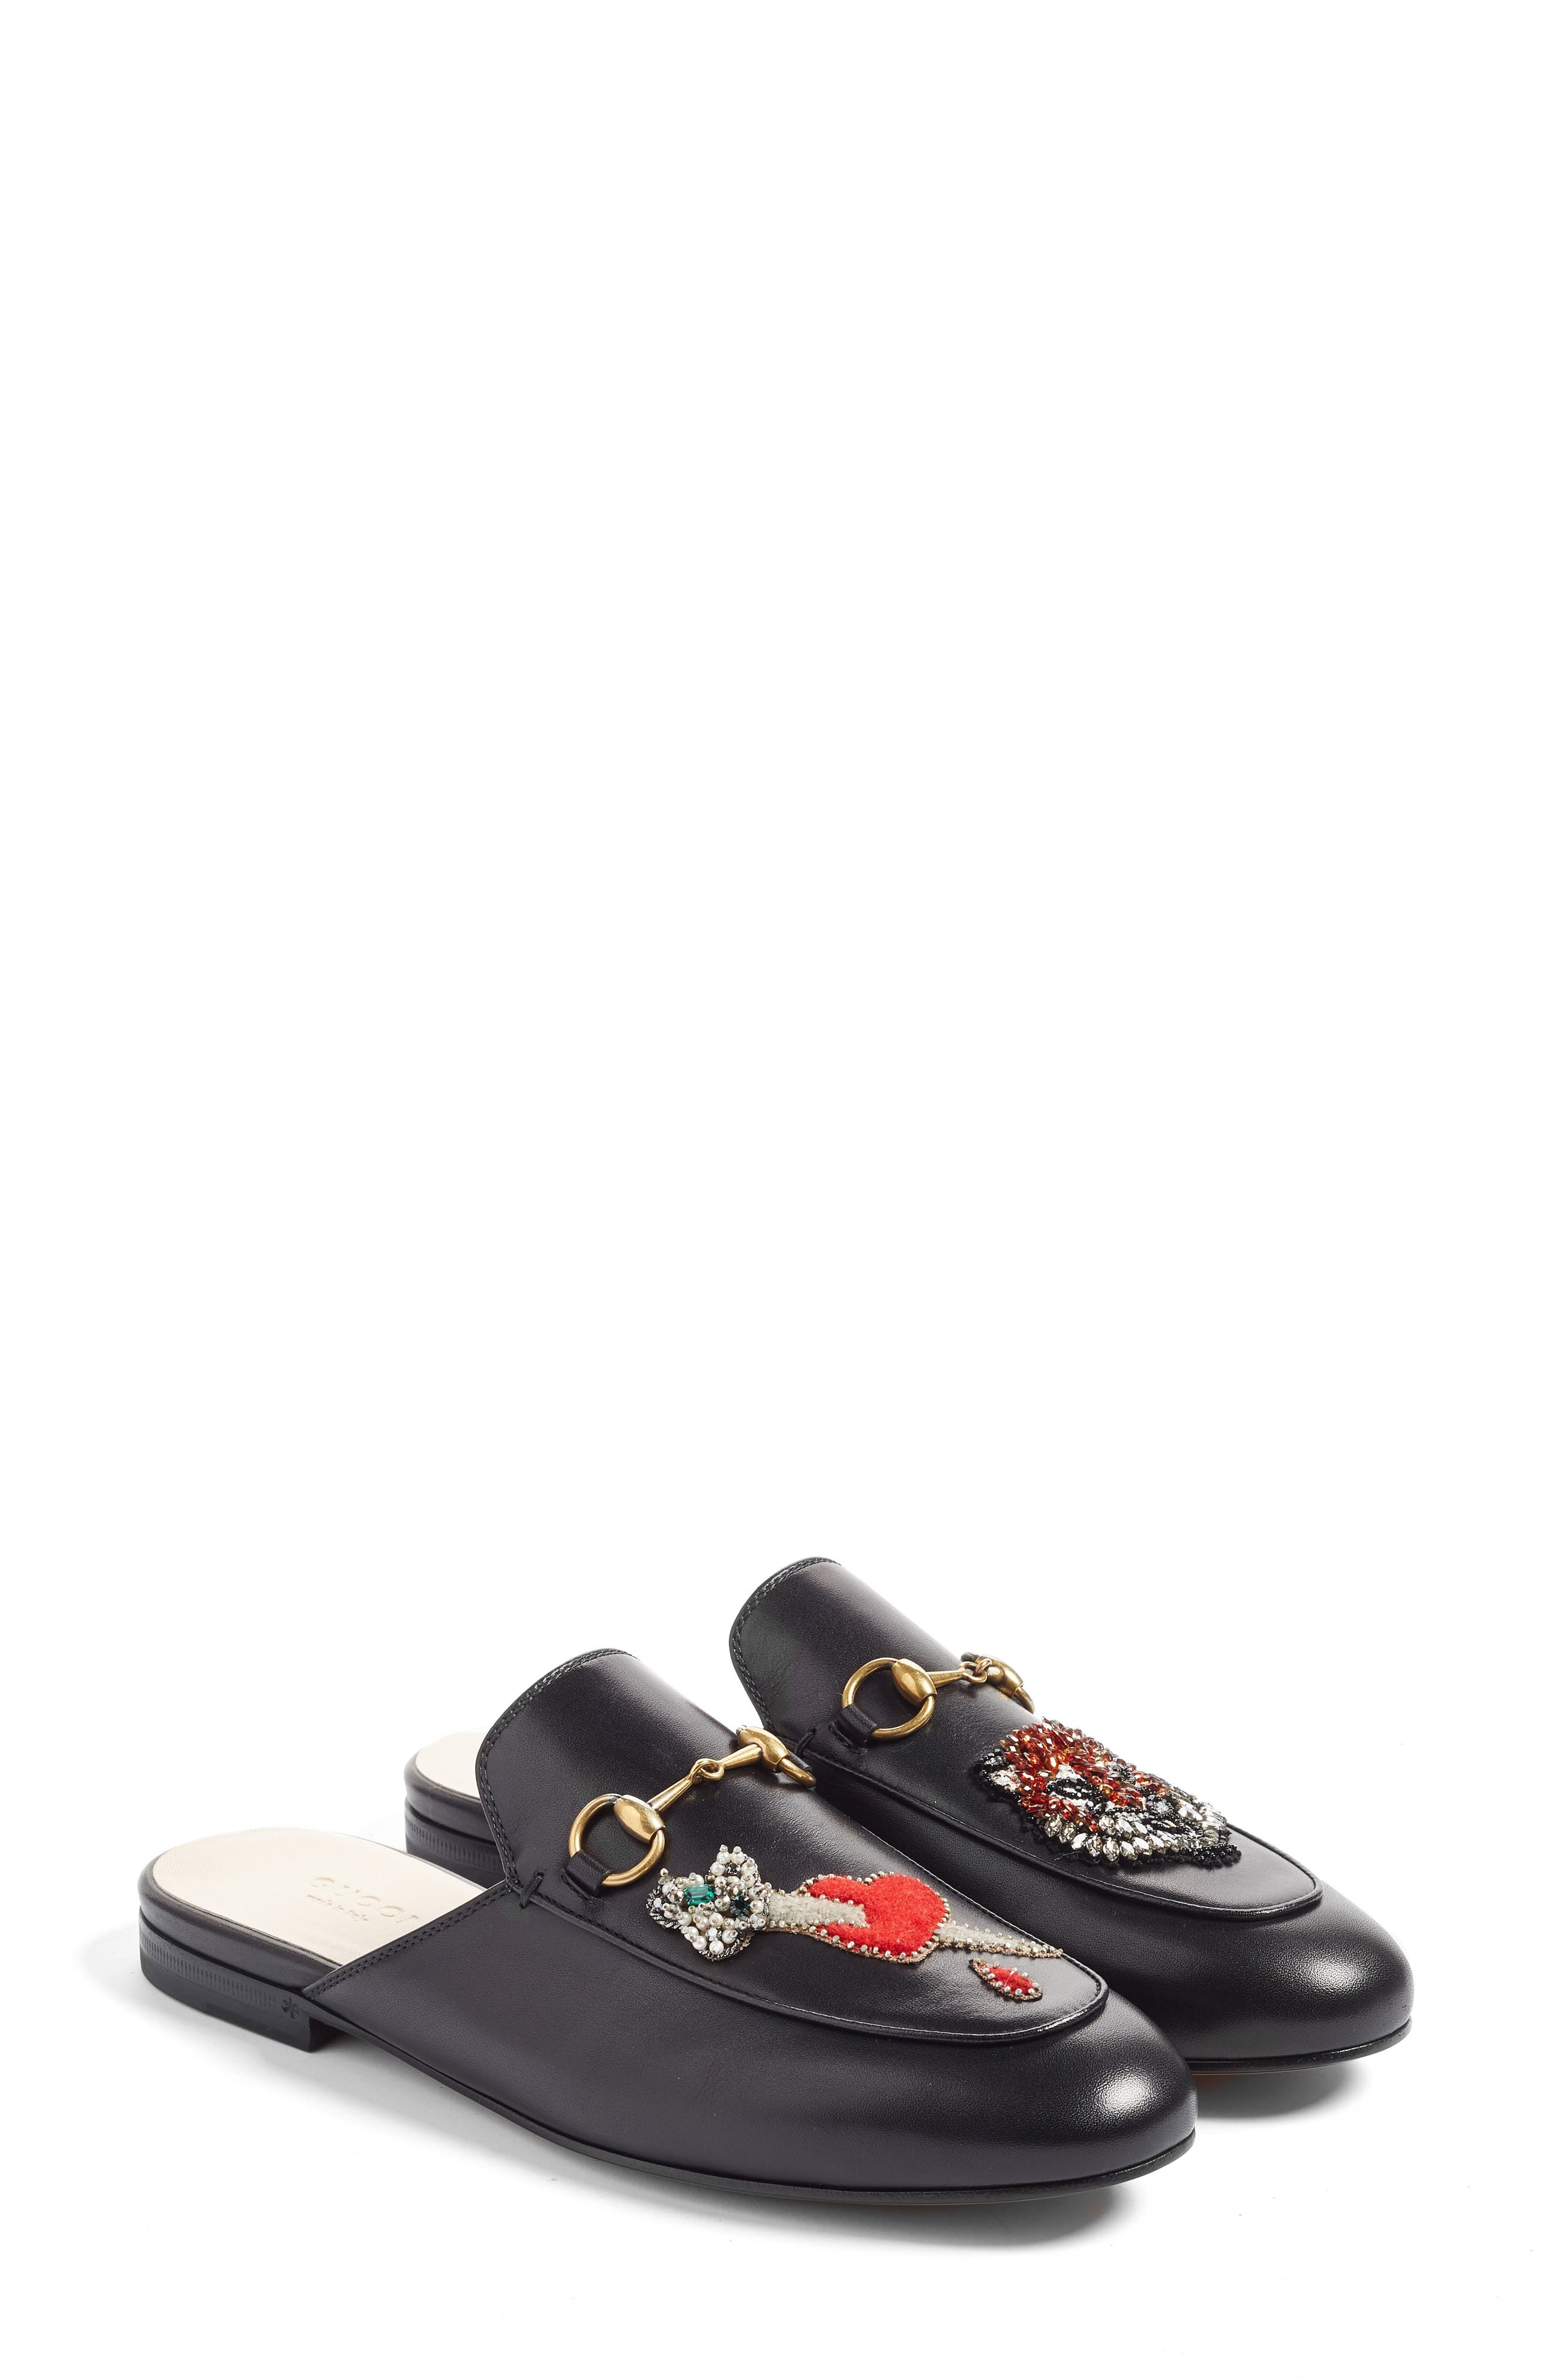 Alternate Image 3  - Gucci Princetown Mule Loafer (Women)